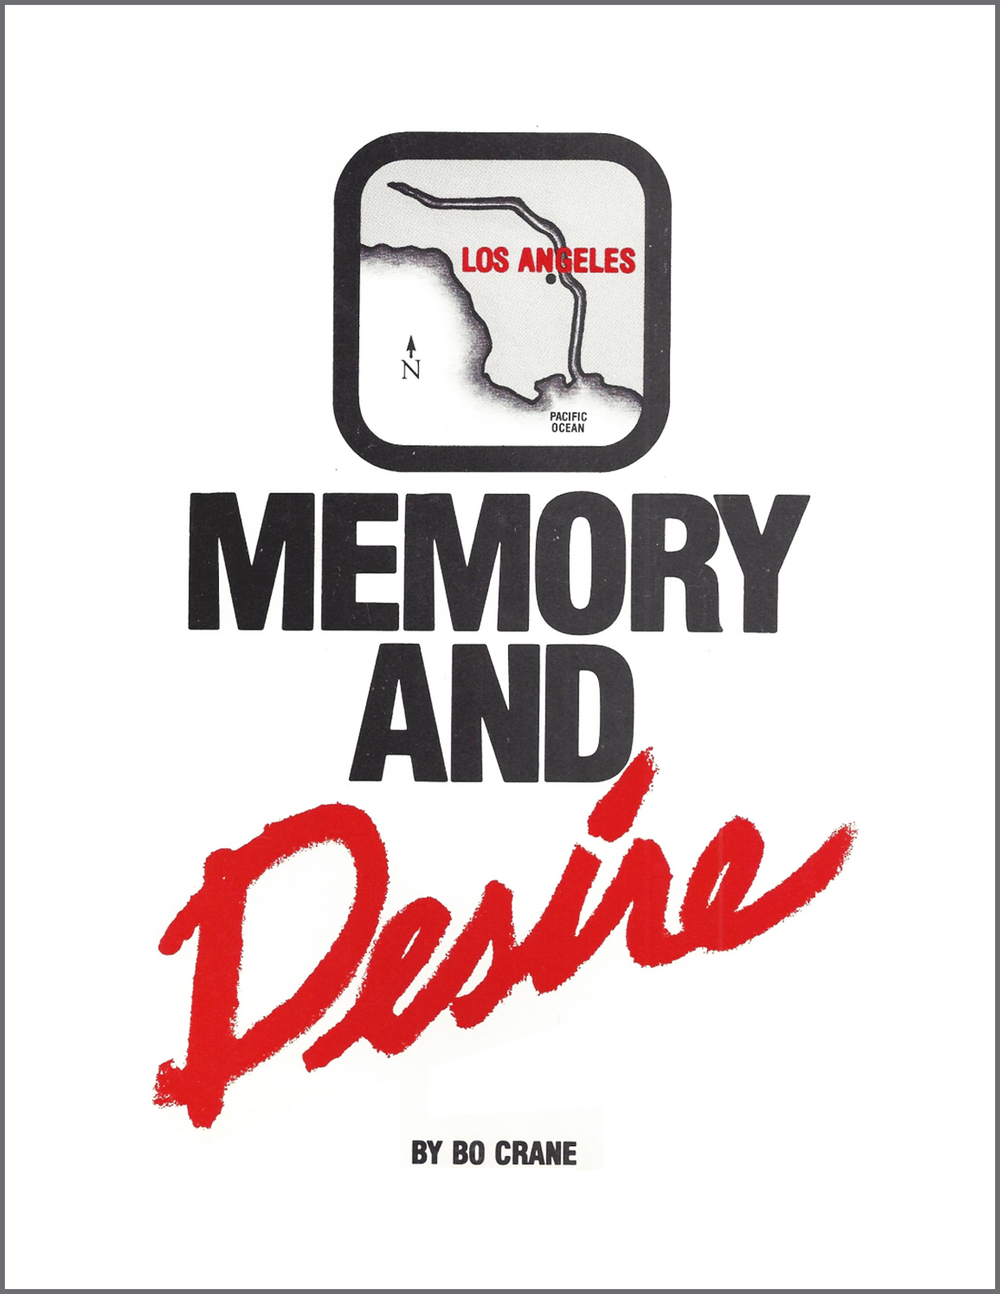 Memory and desire by bo crane